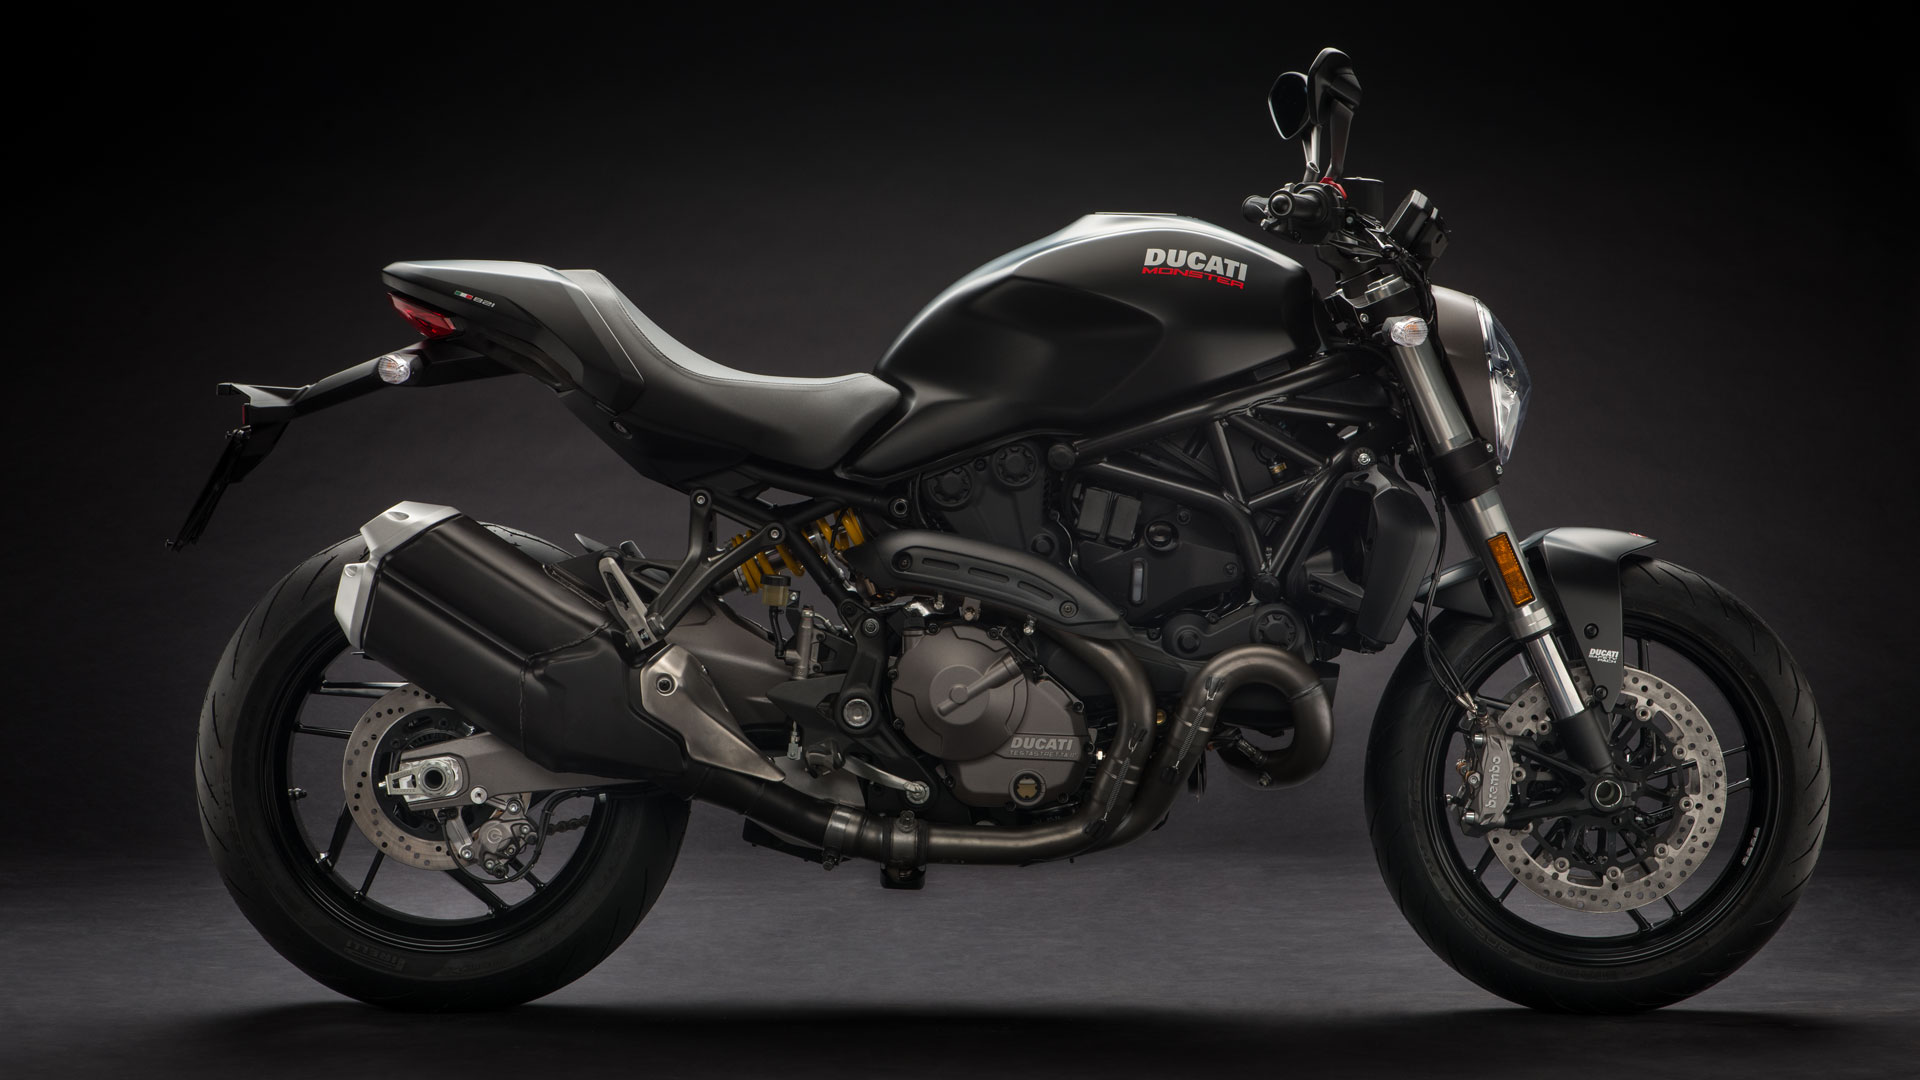 Ducati Monster 821 Naked Motorcycles By Ducati